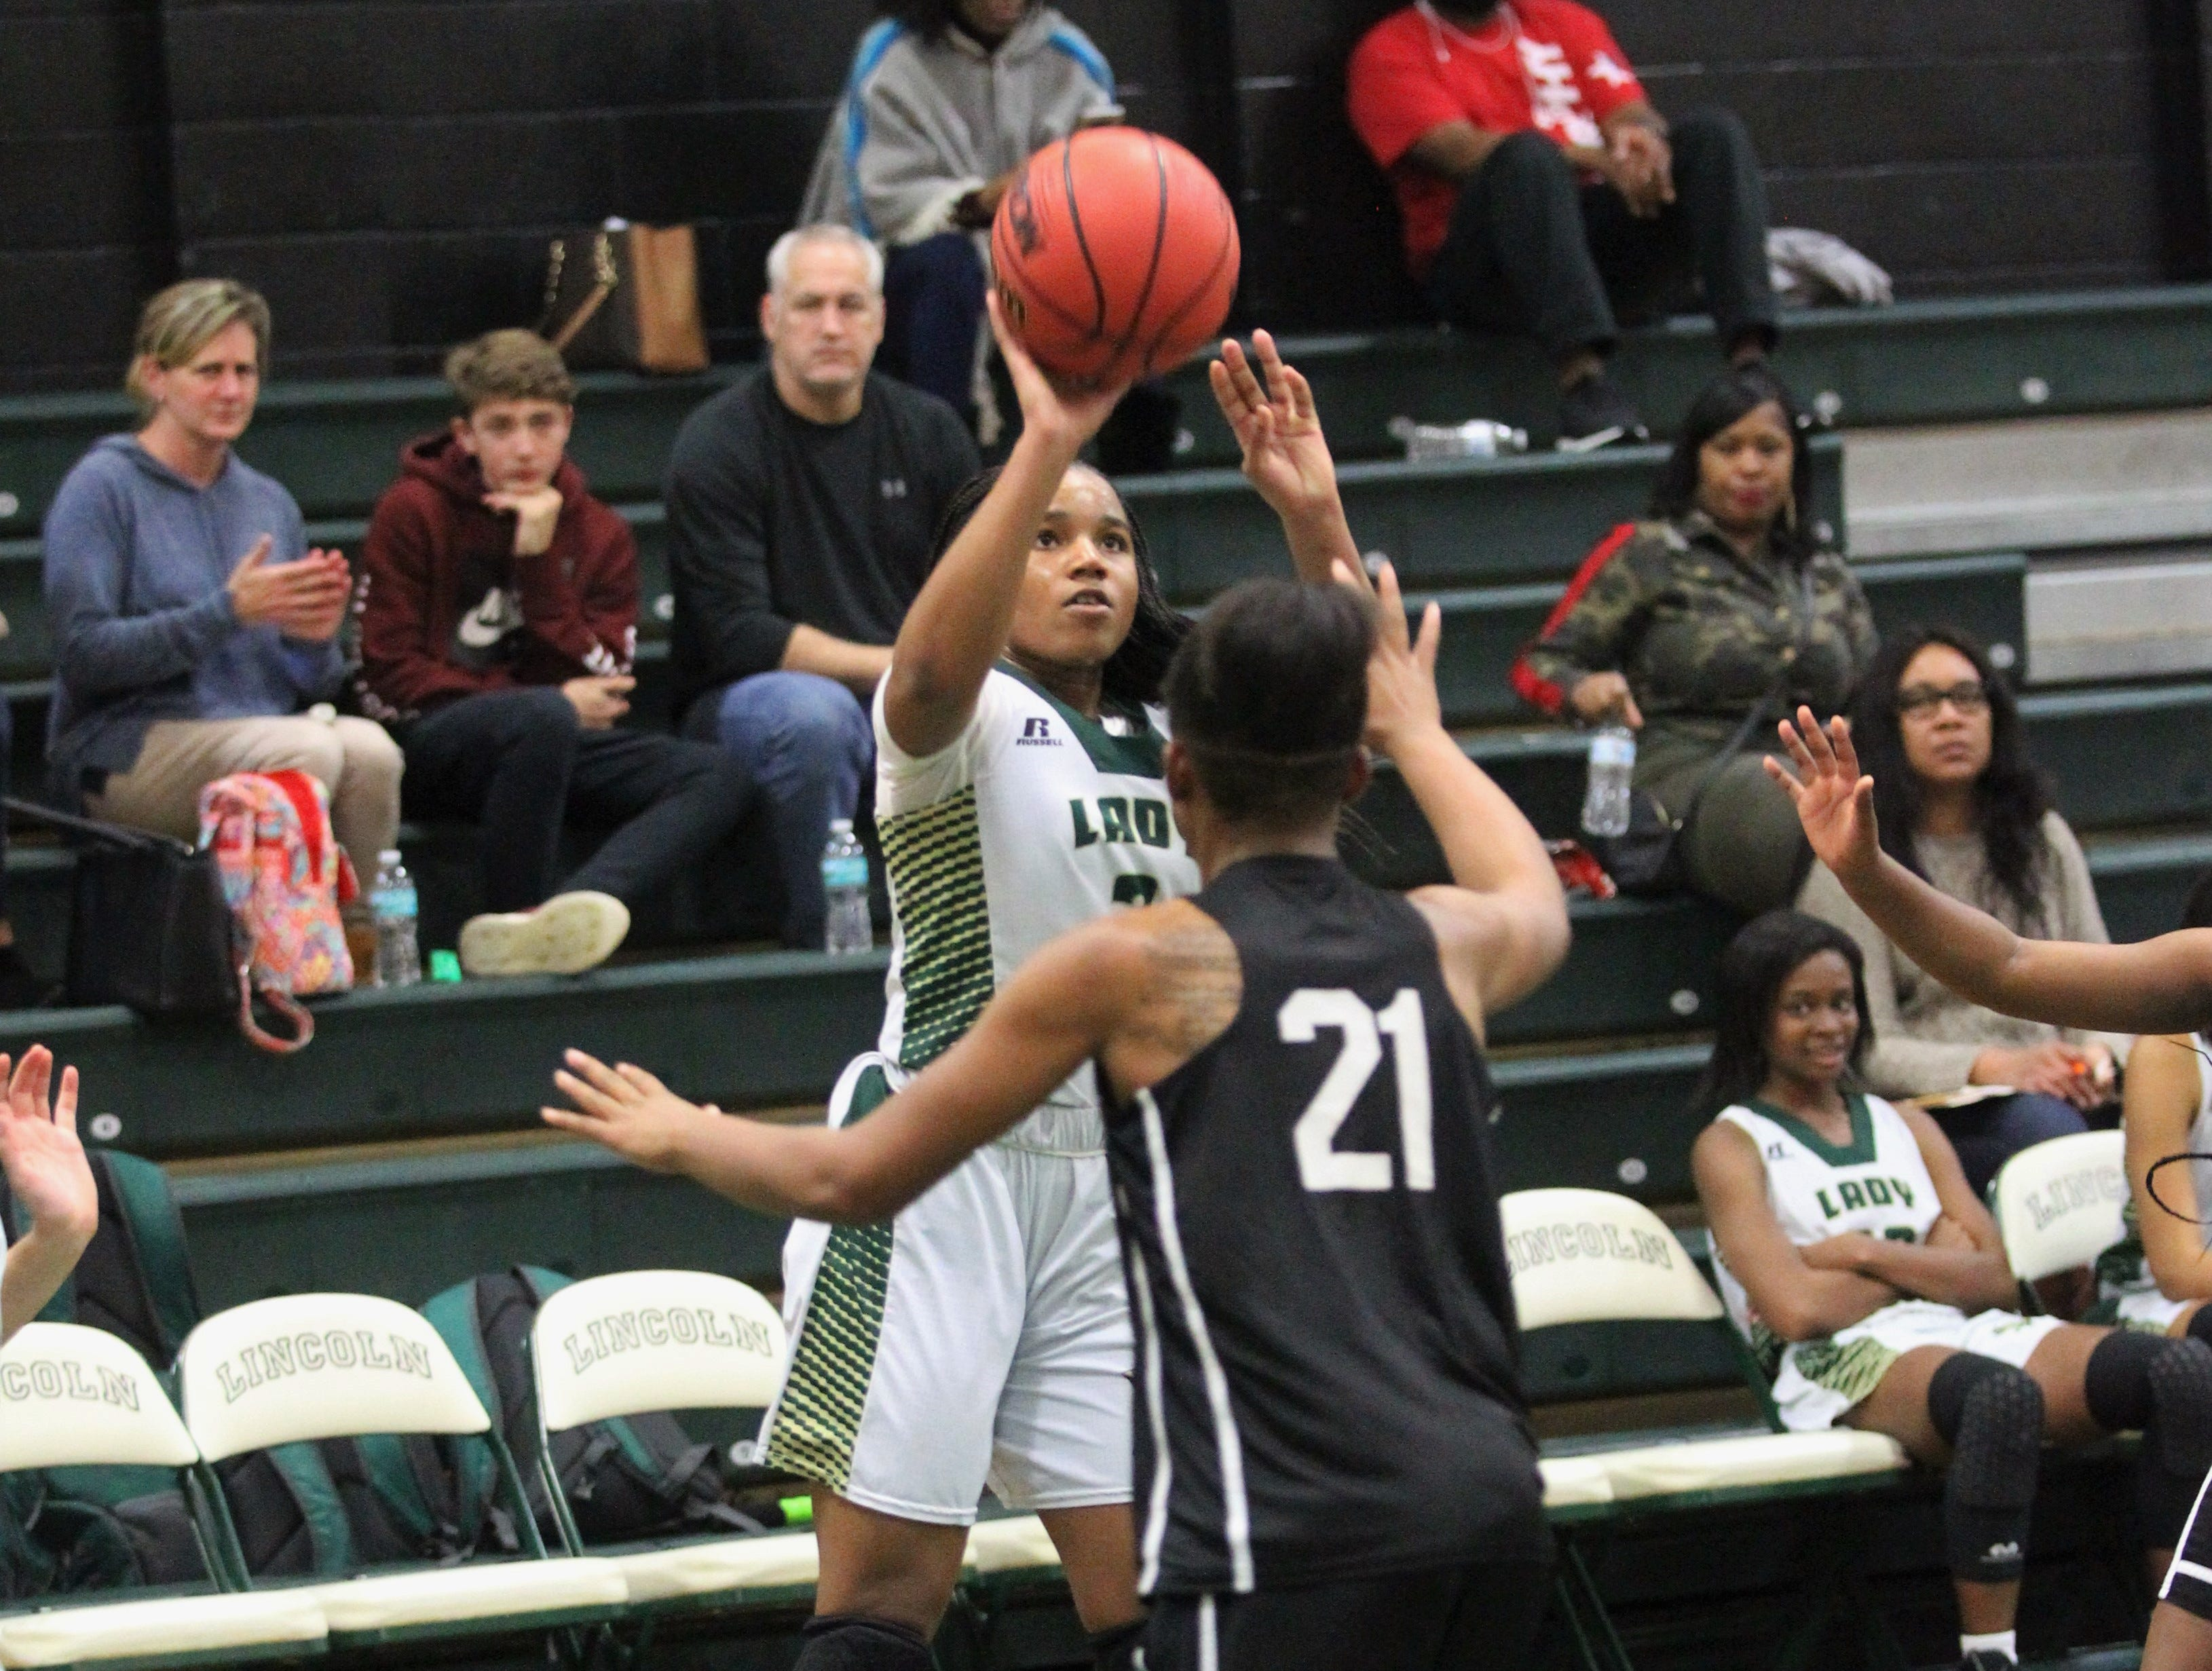 Lincoln's girls basketball team beat Godby 67-32 on Jan. 29, 2019.